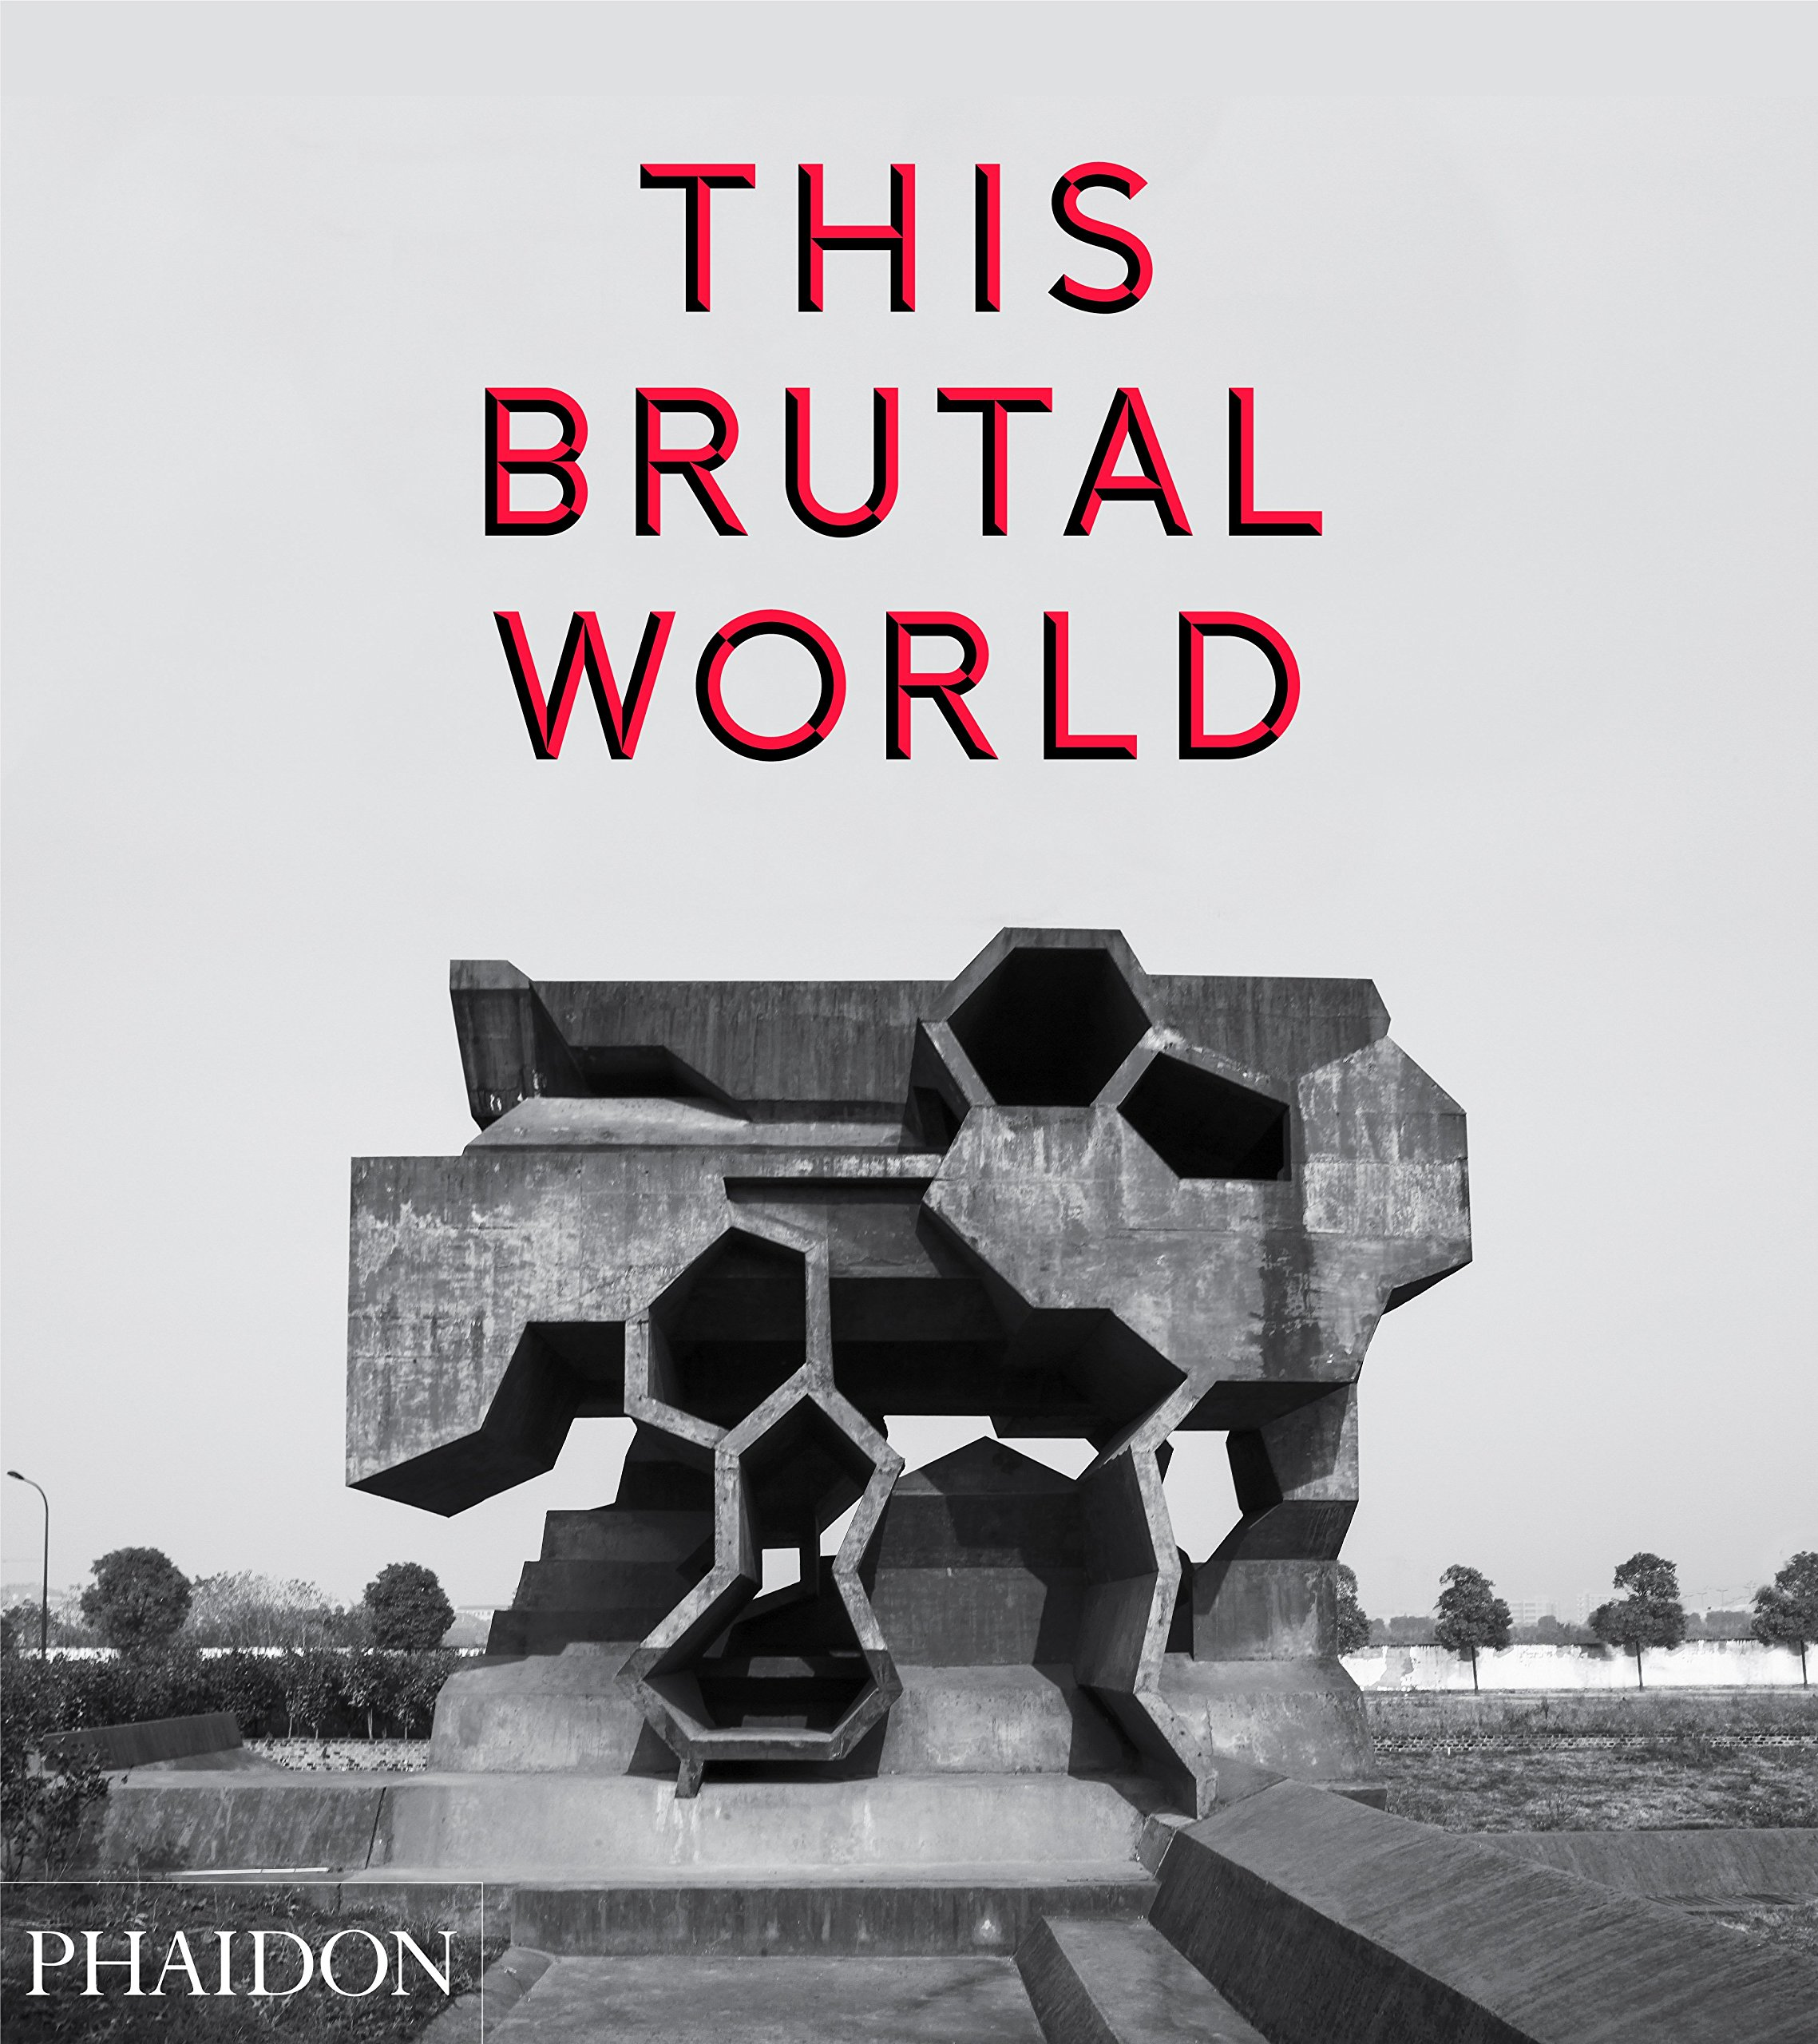 This Brutal World ISBN-13 9780714871080